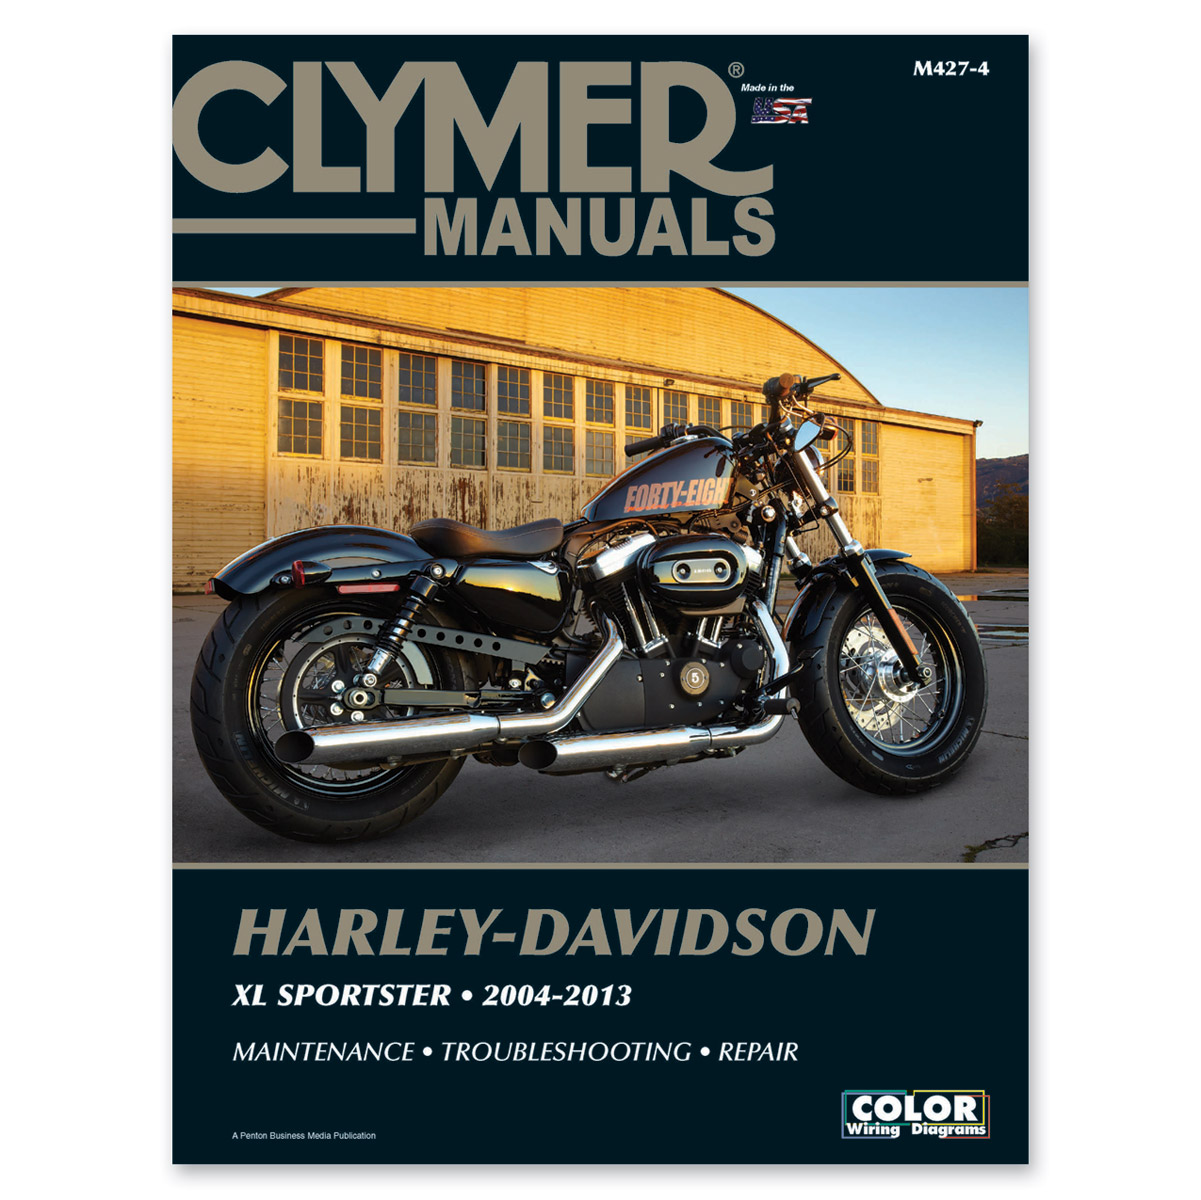 clymer sportster repair manual 446 613 j p cycles rh jpcycles com 2009 Harley Sportster 1200 Low 2009 Harley Sportster 1200 Low